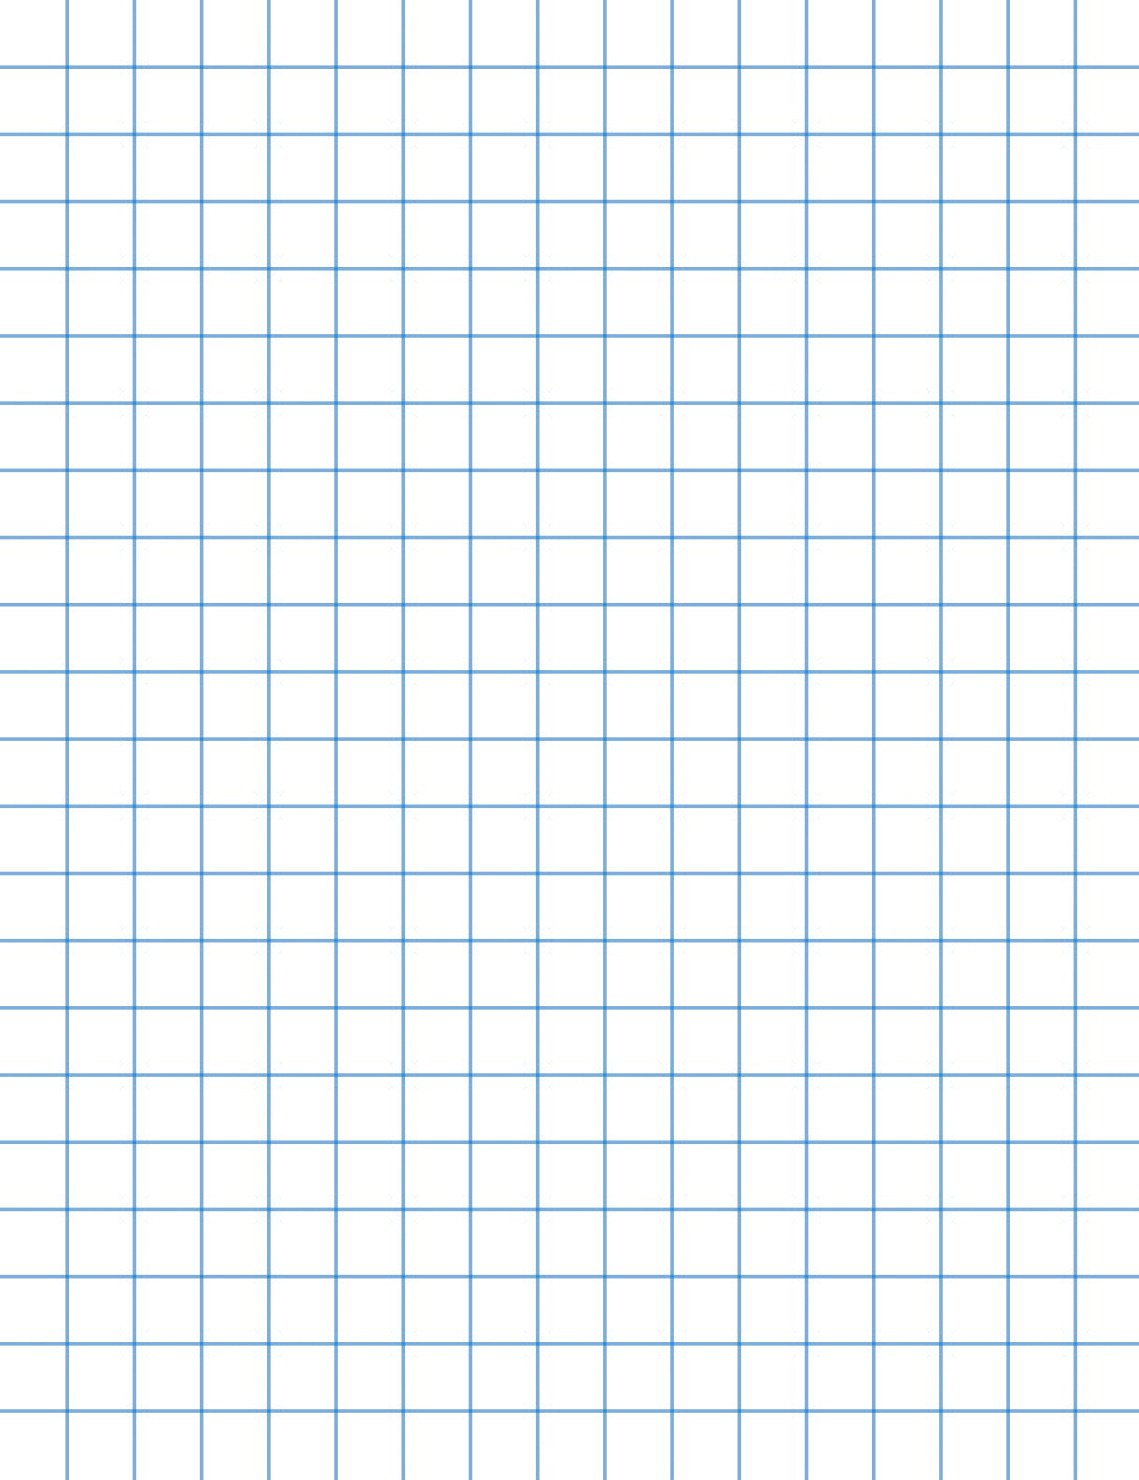 School Smart 16 pound Bond Graph Paper - 8 1/2 x 11 inches - Ream of 500 - White